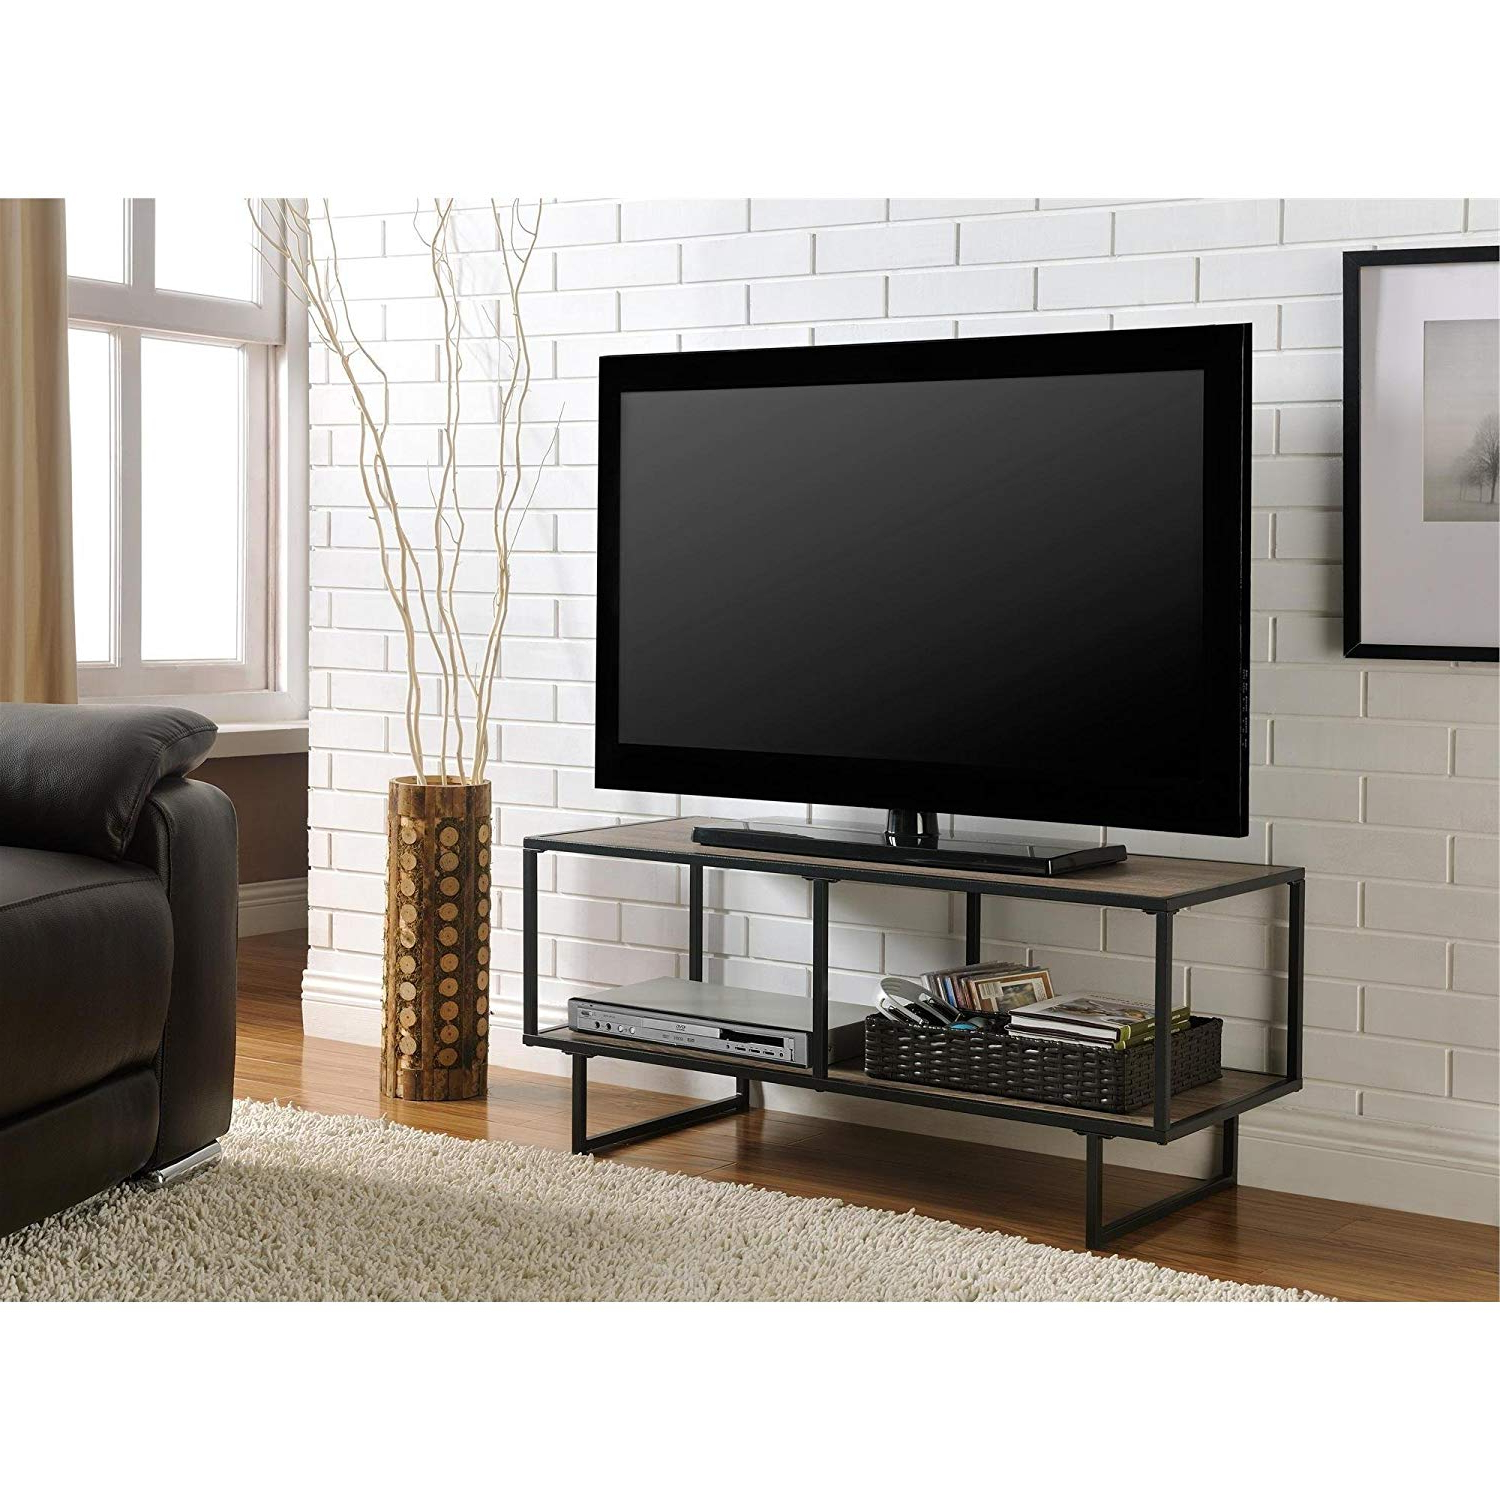 Current Gunmetal Media Console Tables Throughout Amazon: Metro Shop Emmett Gunmetal Grey Tv Stand Sonoma Oak (View 6 of 20)